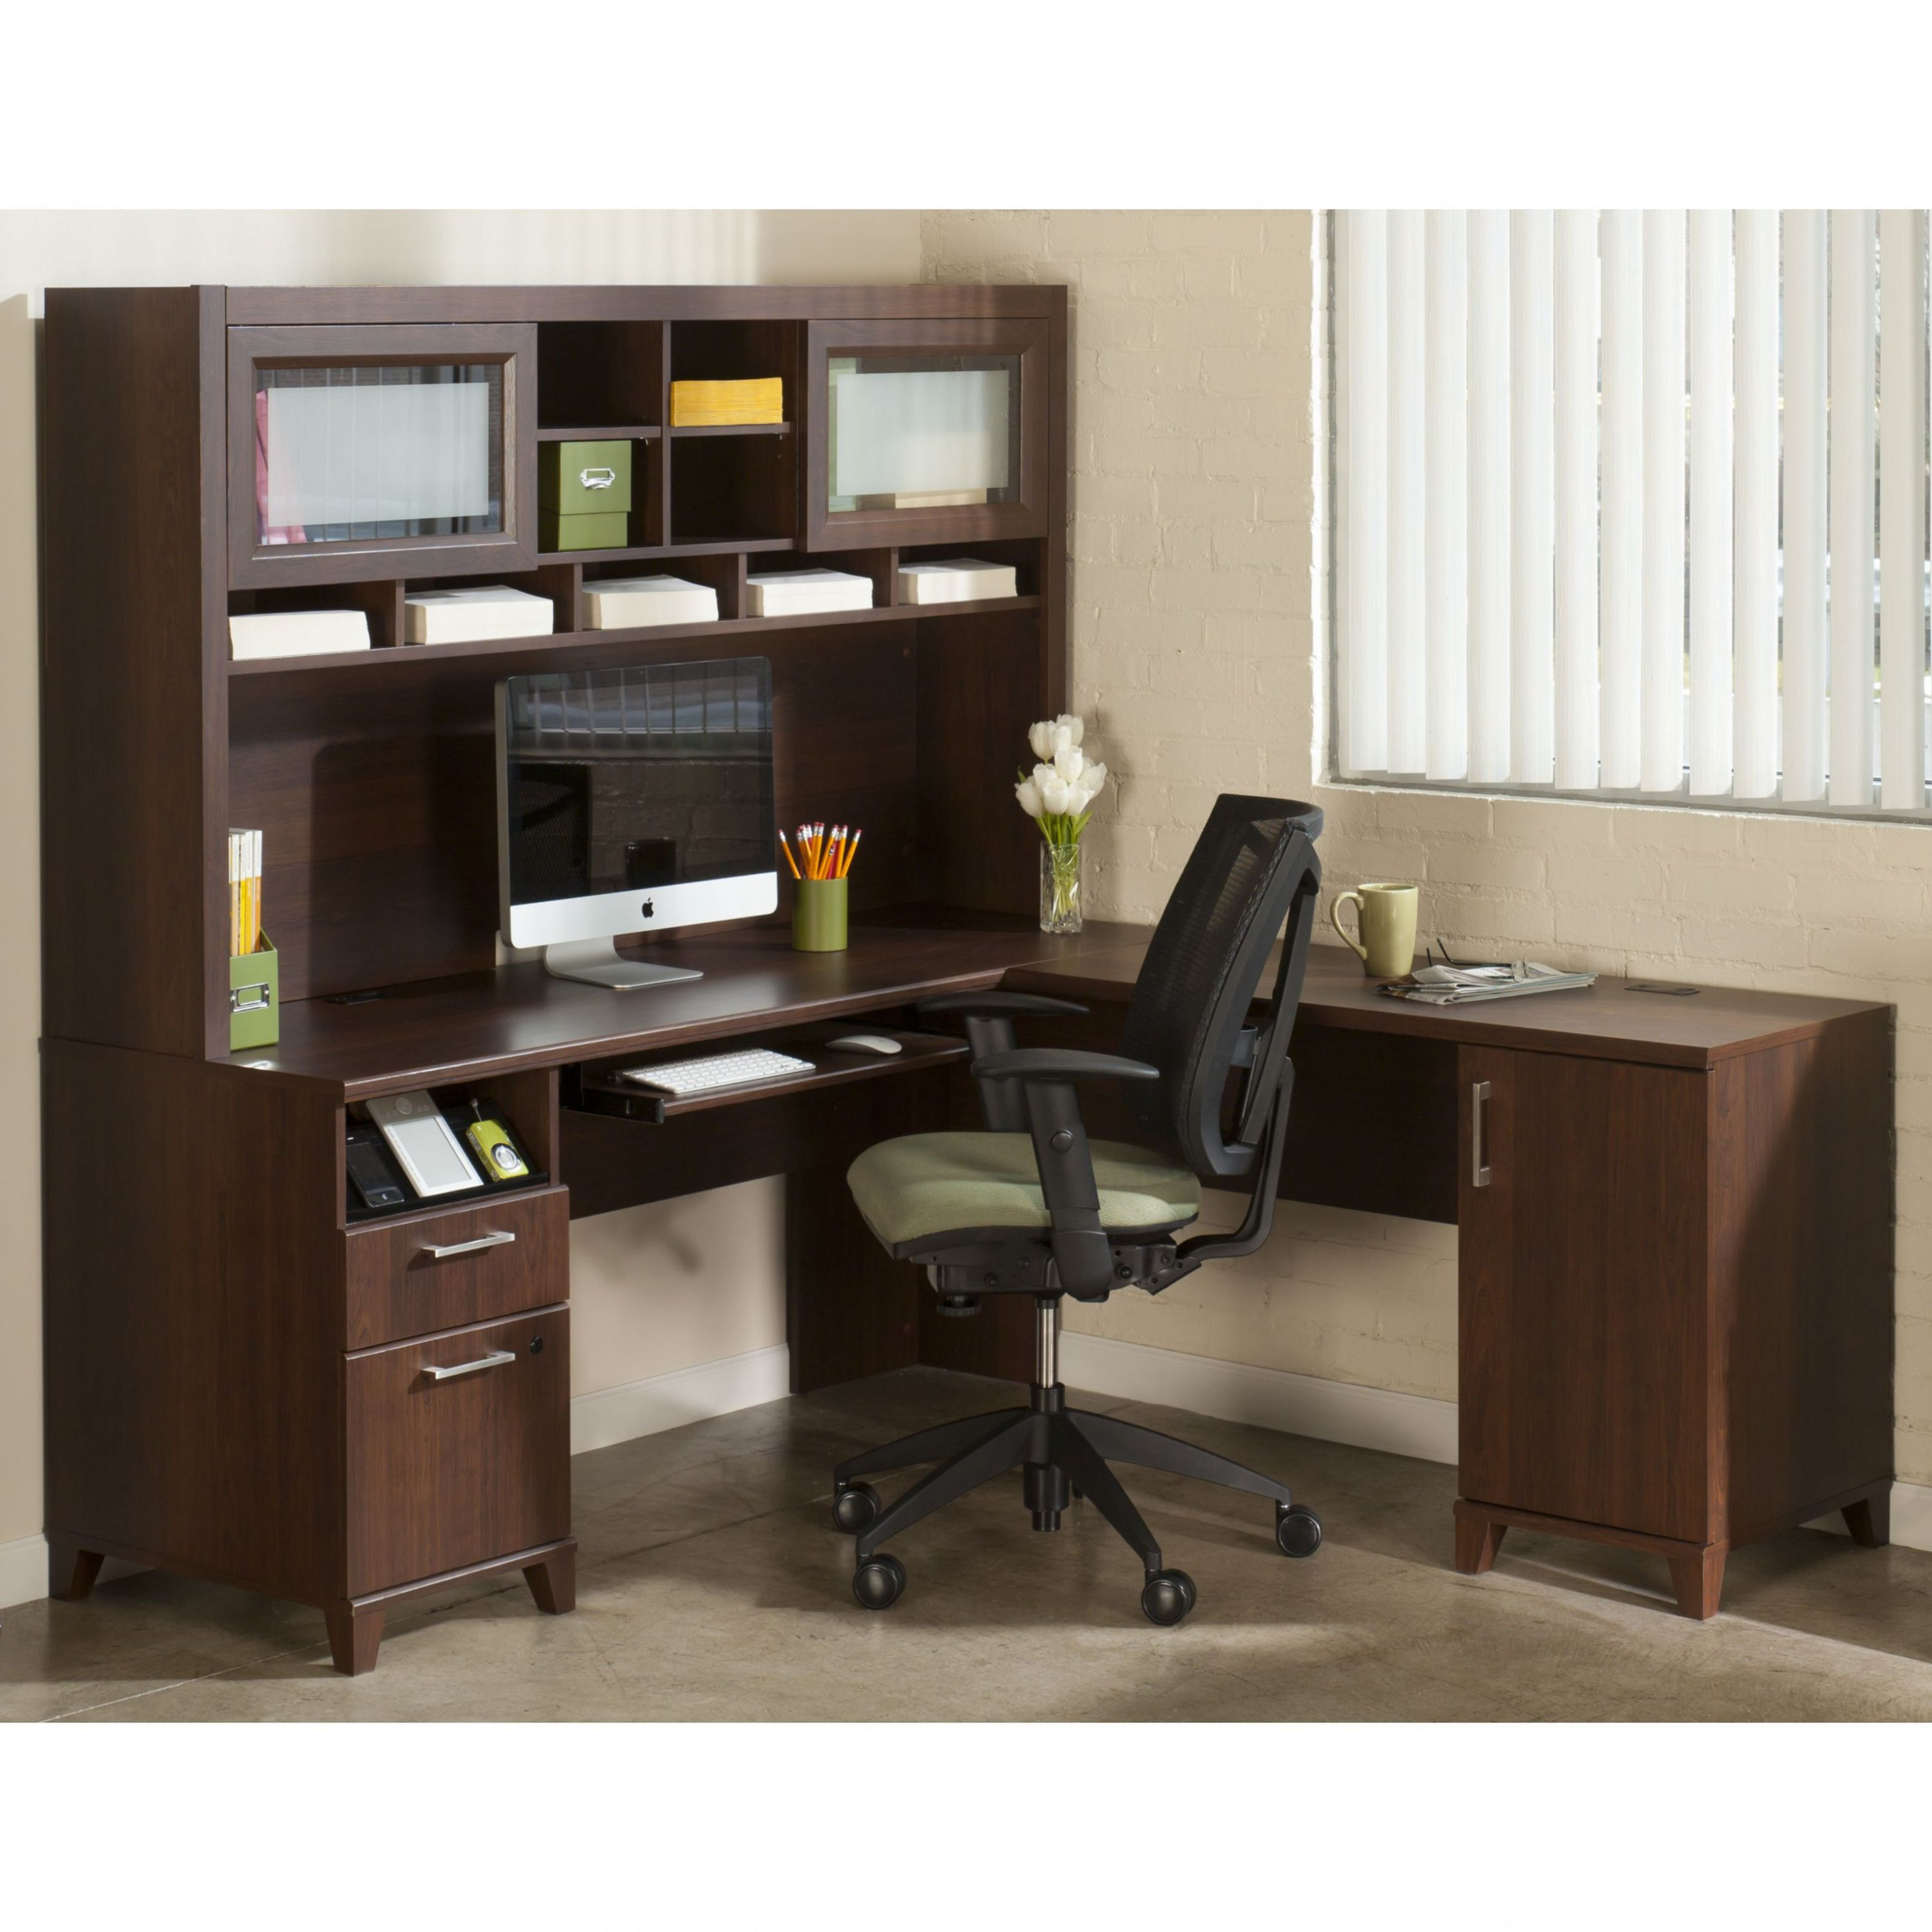 Superieur 99+ Corner L Shaped Office Desk With Hutch   Contemporary Home Office  Furniture Check More At ...